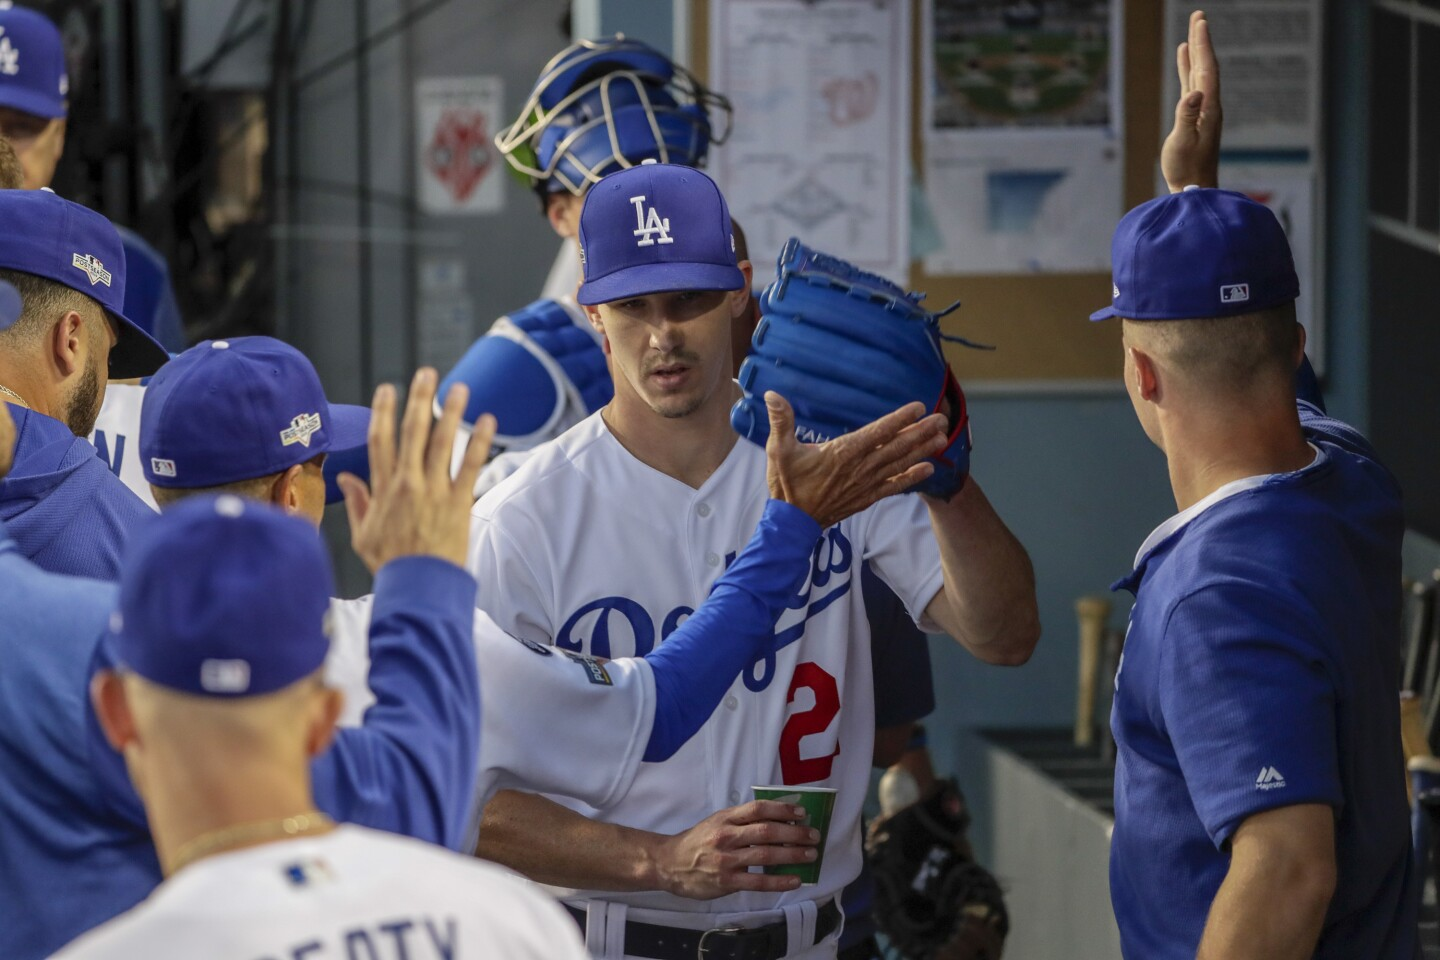 LOS ANGELES, CA, THURSDAY, OCTOBER 3, 2019 - Los Angeles Dodgers starting pitcher Walker Buehler (21) is greeted in the dugout after pitching the third inning against the Nationals in game one of the National League Division Series at Dodger Stadium. (Robert Gauthier/Los Angeles Times)